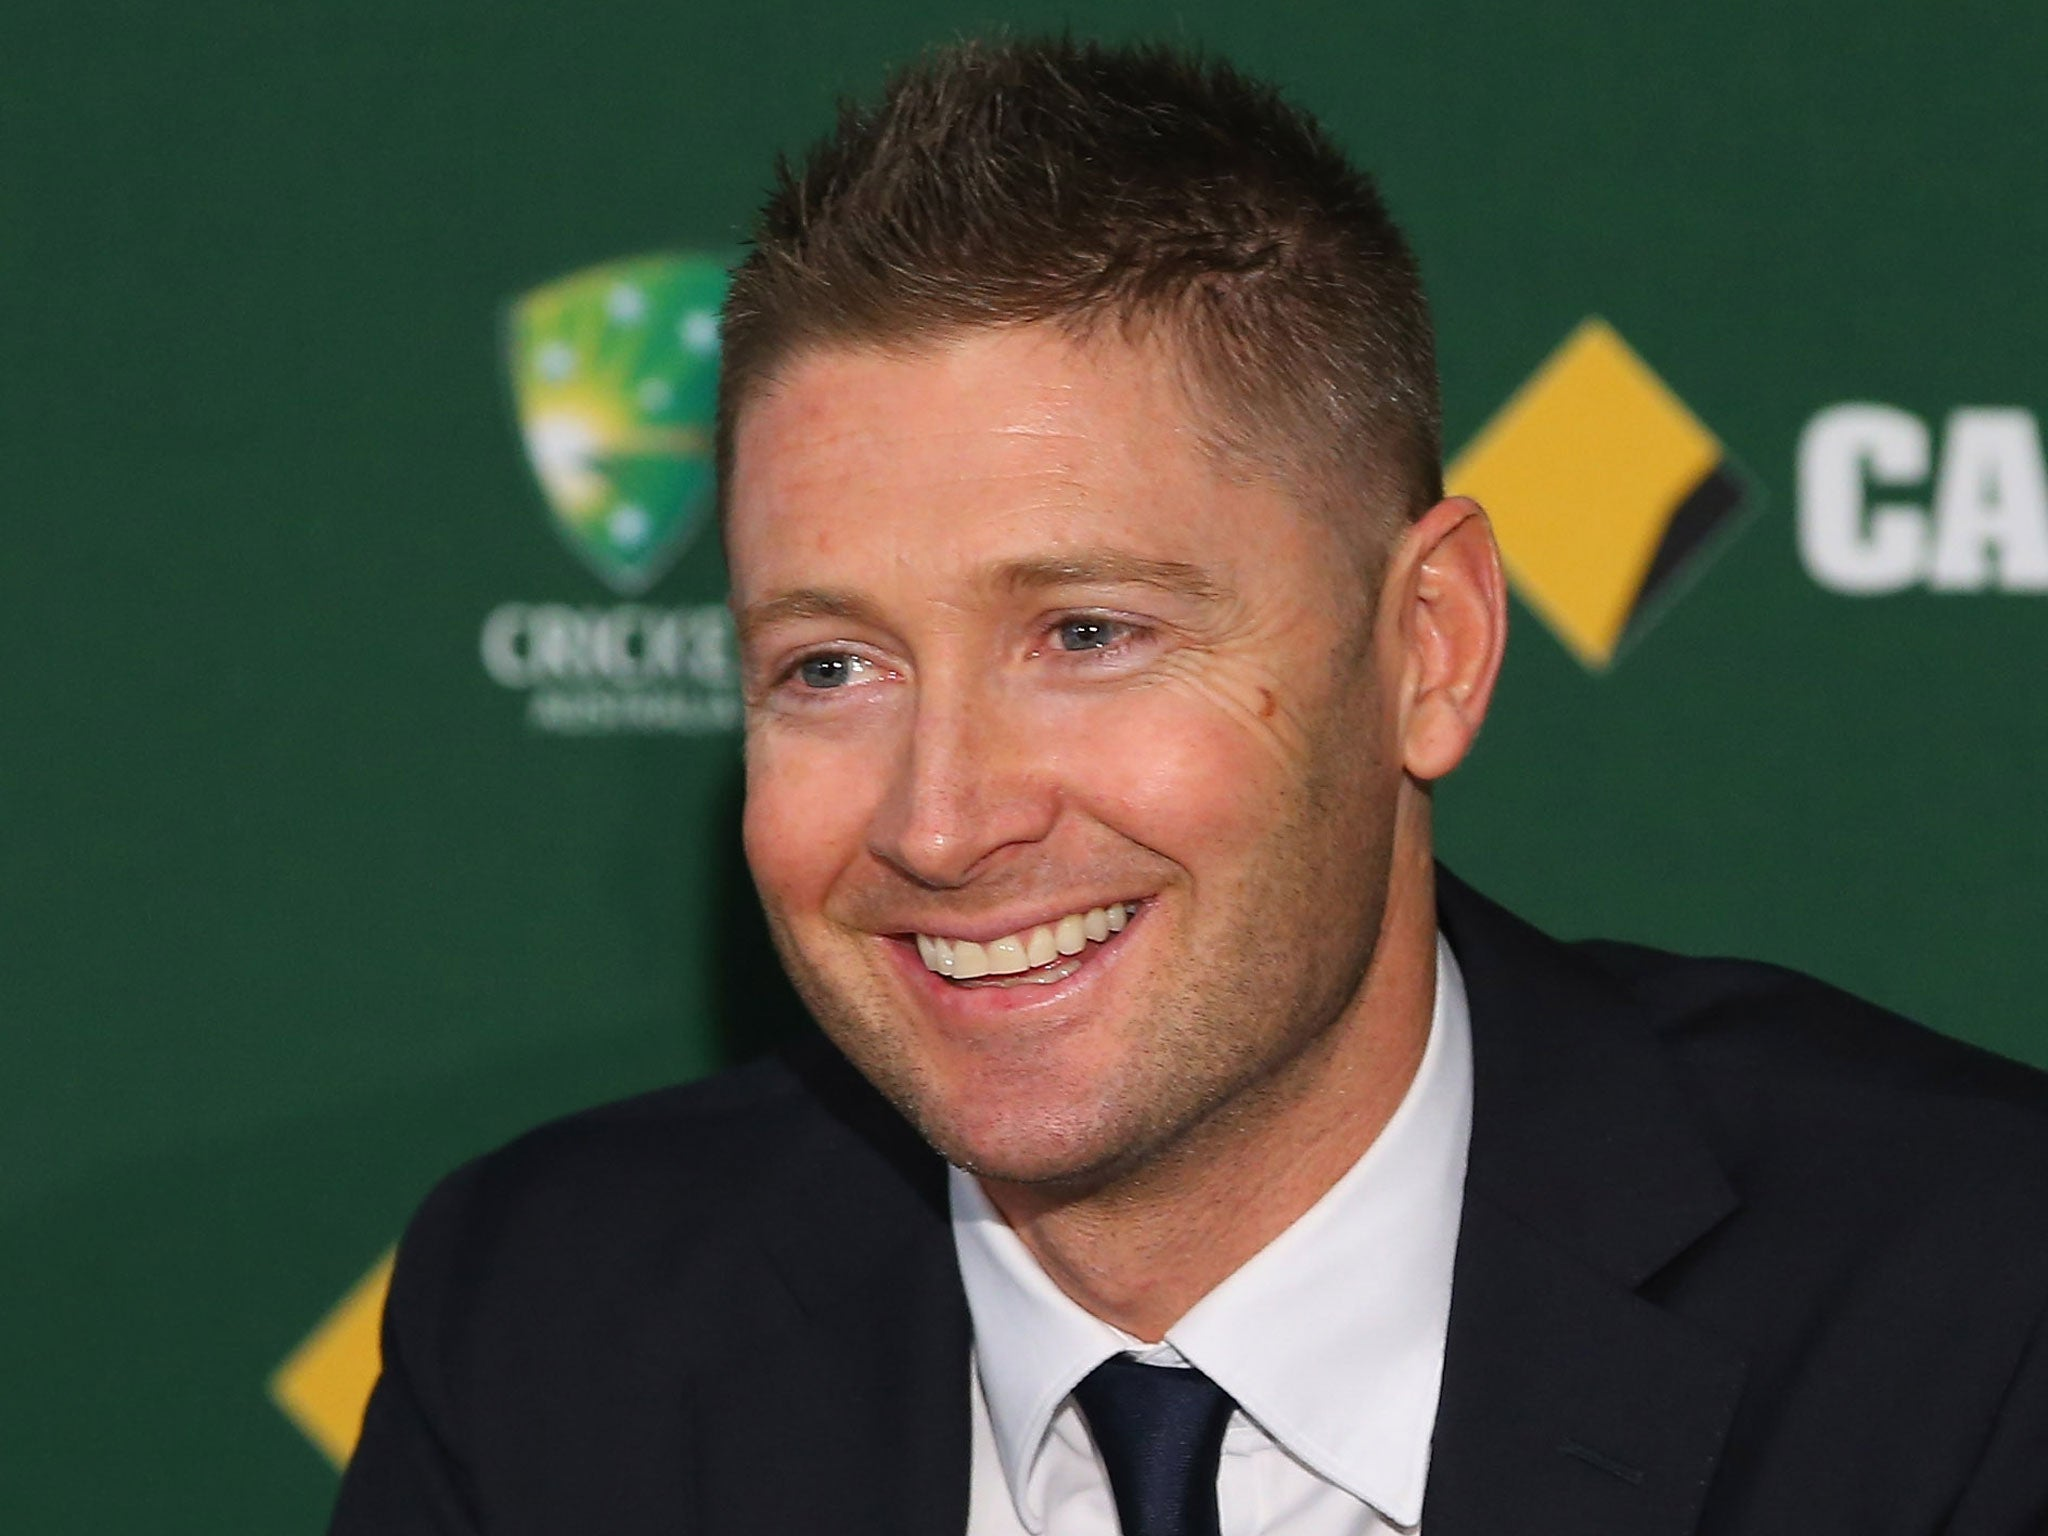 The Ashes 2013-14: Australia captain Michael Clarke begins the mind games by announcing England team for first Test | Cricket | Sport | The Independent - Michael-Clarke